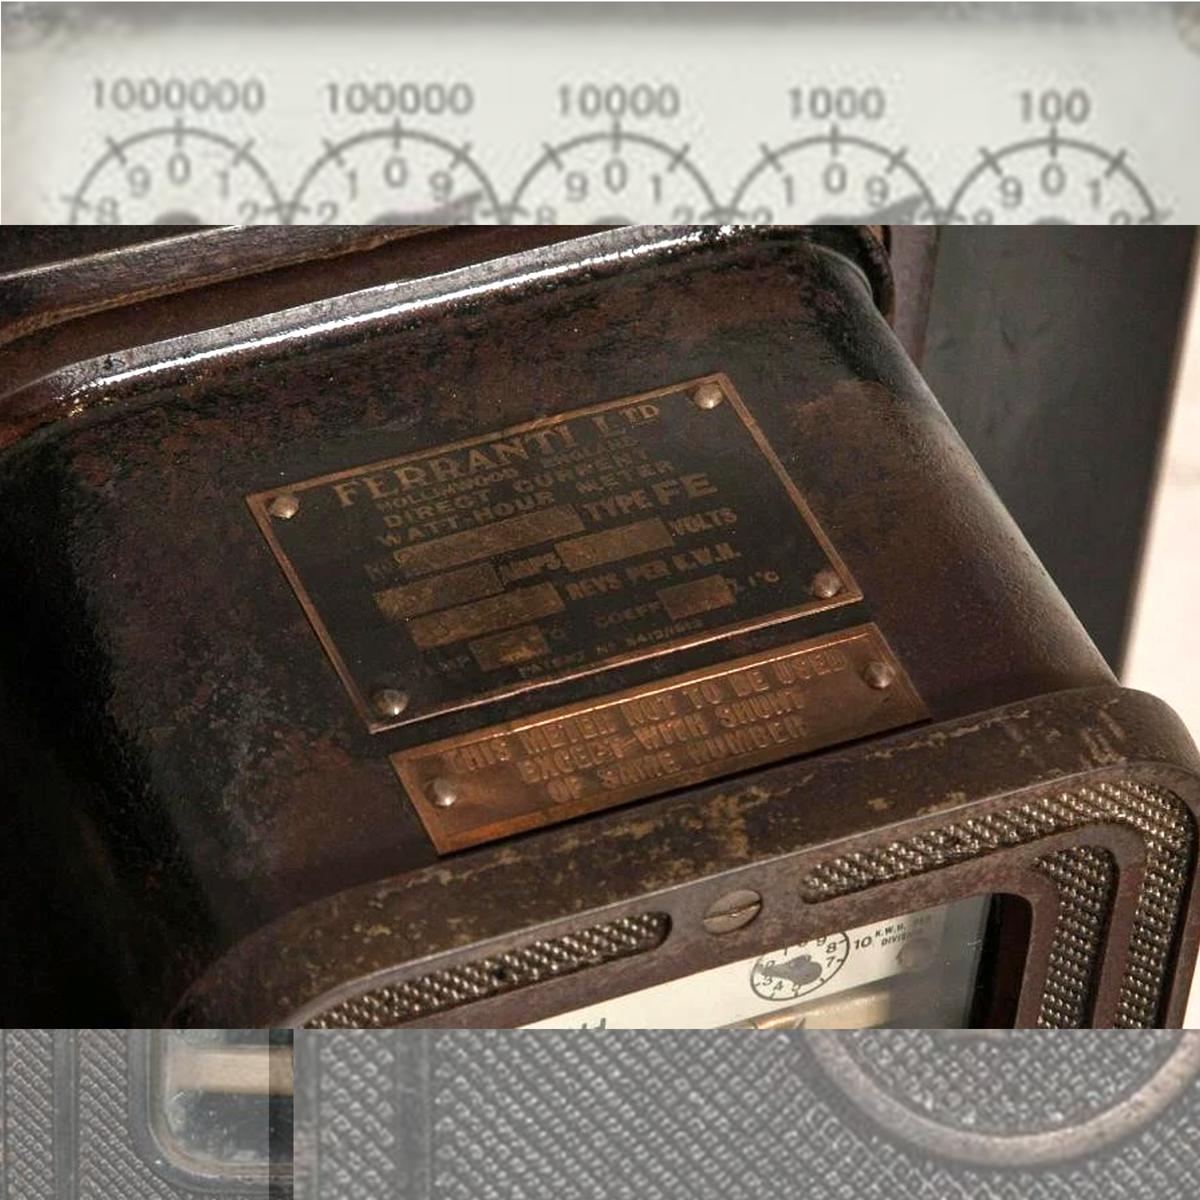 Vintage Ferranti Electric Meter from Pinewood Studios Power Station | The Architectural Forum